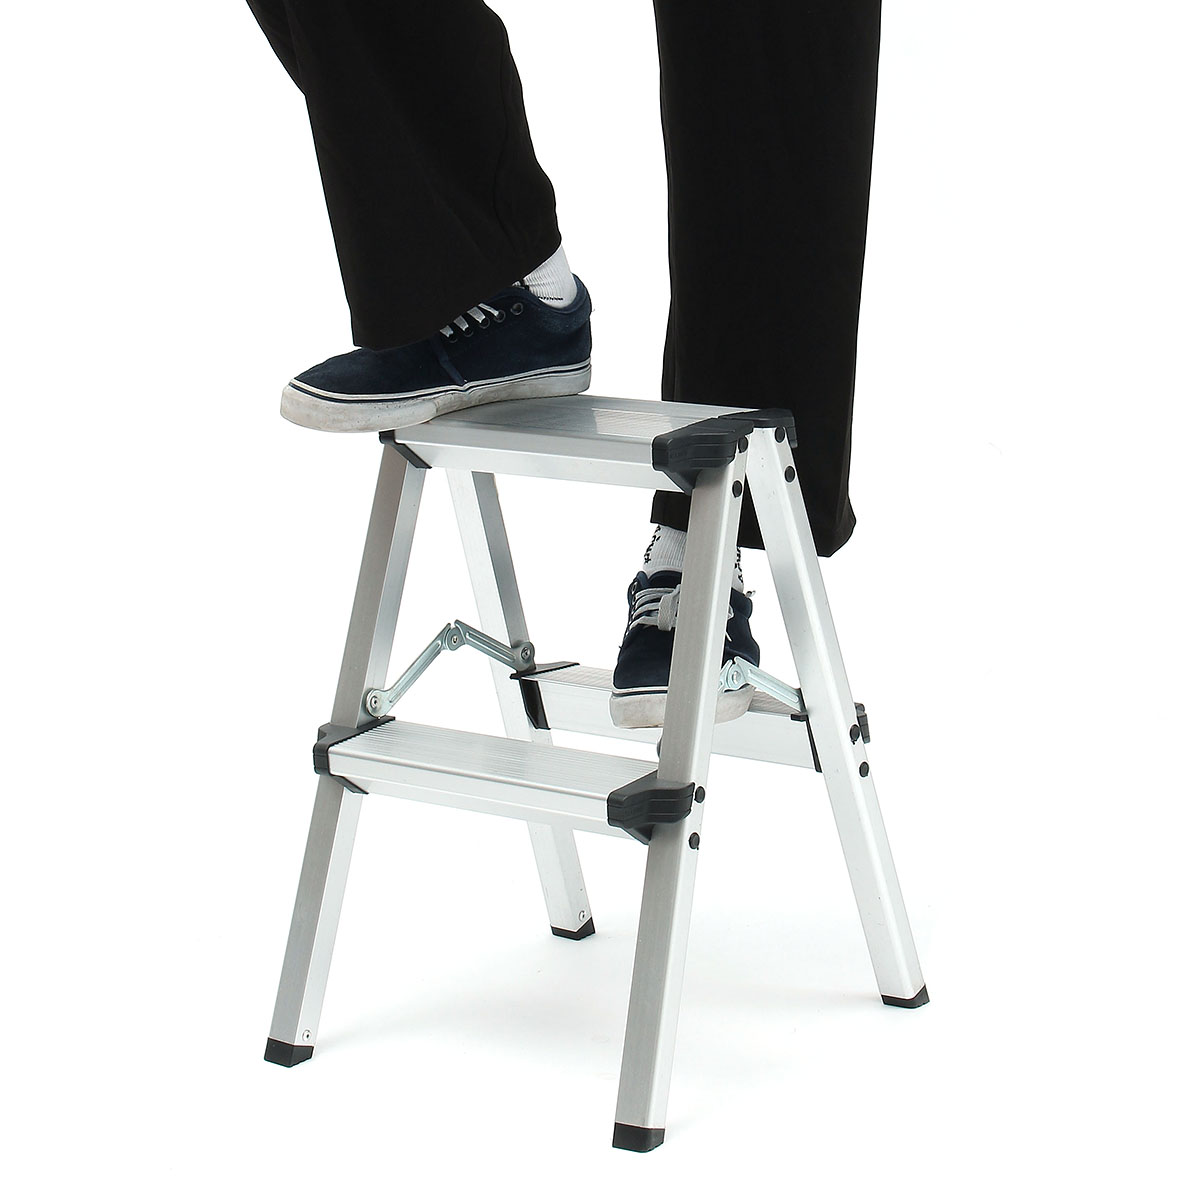 Miraculous Us 33 66 34 Off 150Kg Folding Ladder Maximum Load 2 Step Stool Ladder Anti Slip Safety Aluminium Ladder In Ladders From Tools On Aliexpress Pabps2019 Chair Design Images Pabps2019Com